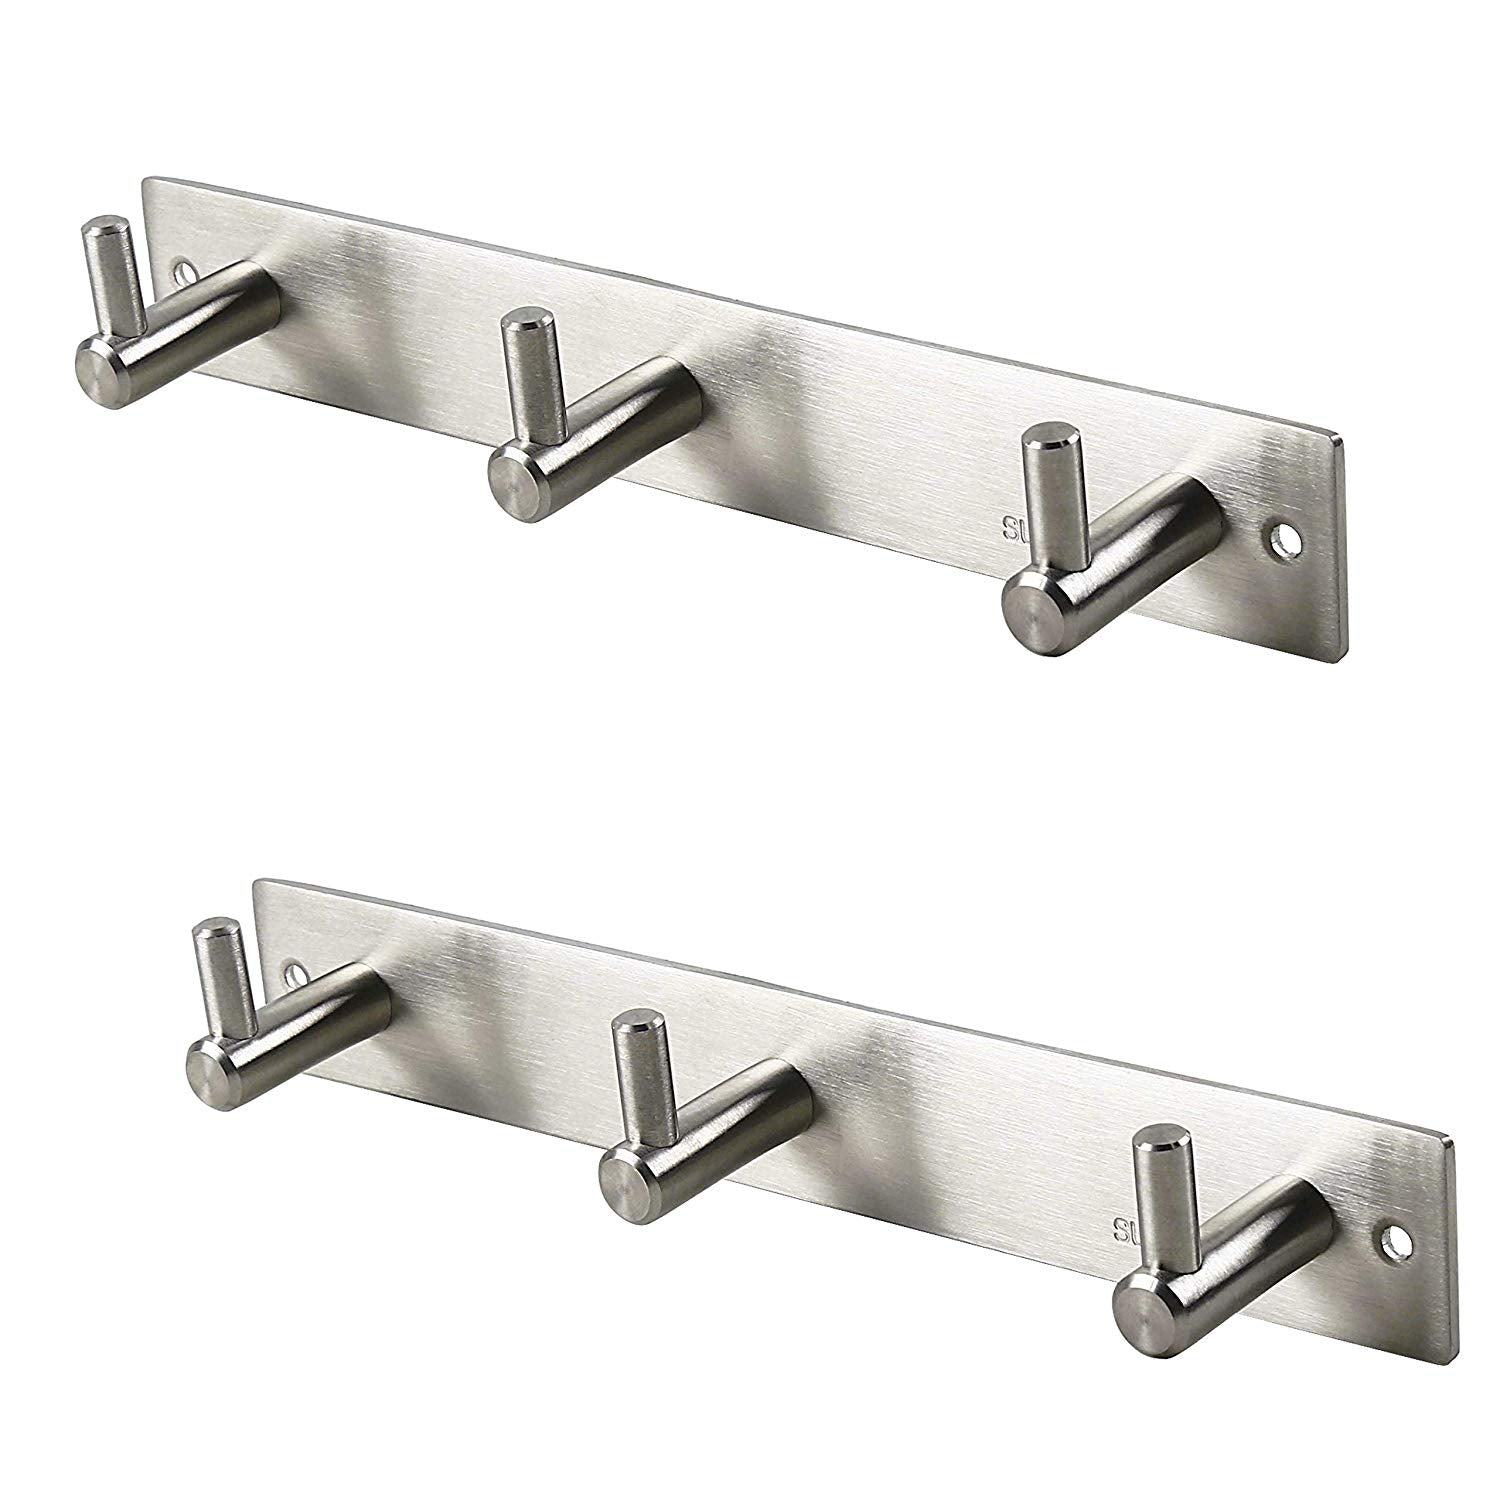 Set of 2, WEBI Heavy Duty SUS 304 Coat Bath Towel Hanger Rail Bar, 3 Hooks, Brushed Finish, for Bedroom, Bathroom, Foyers, Hallways, Entryway, for Great Home, Office Storage & Organization, L-YZ03